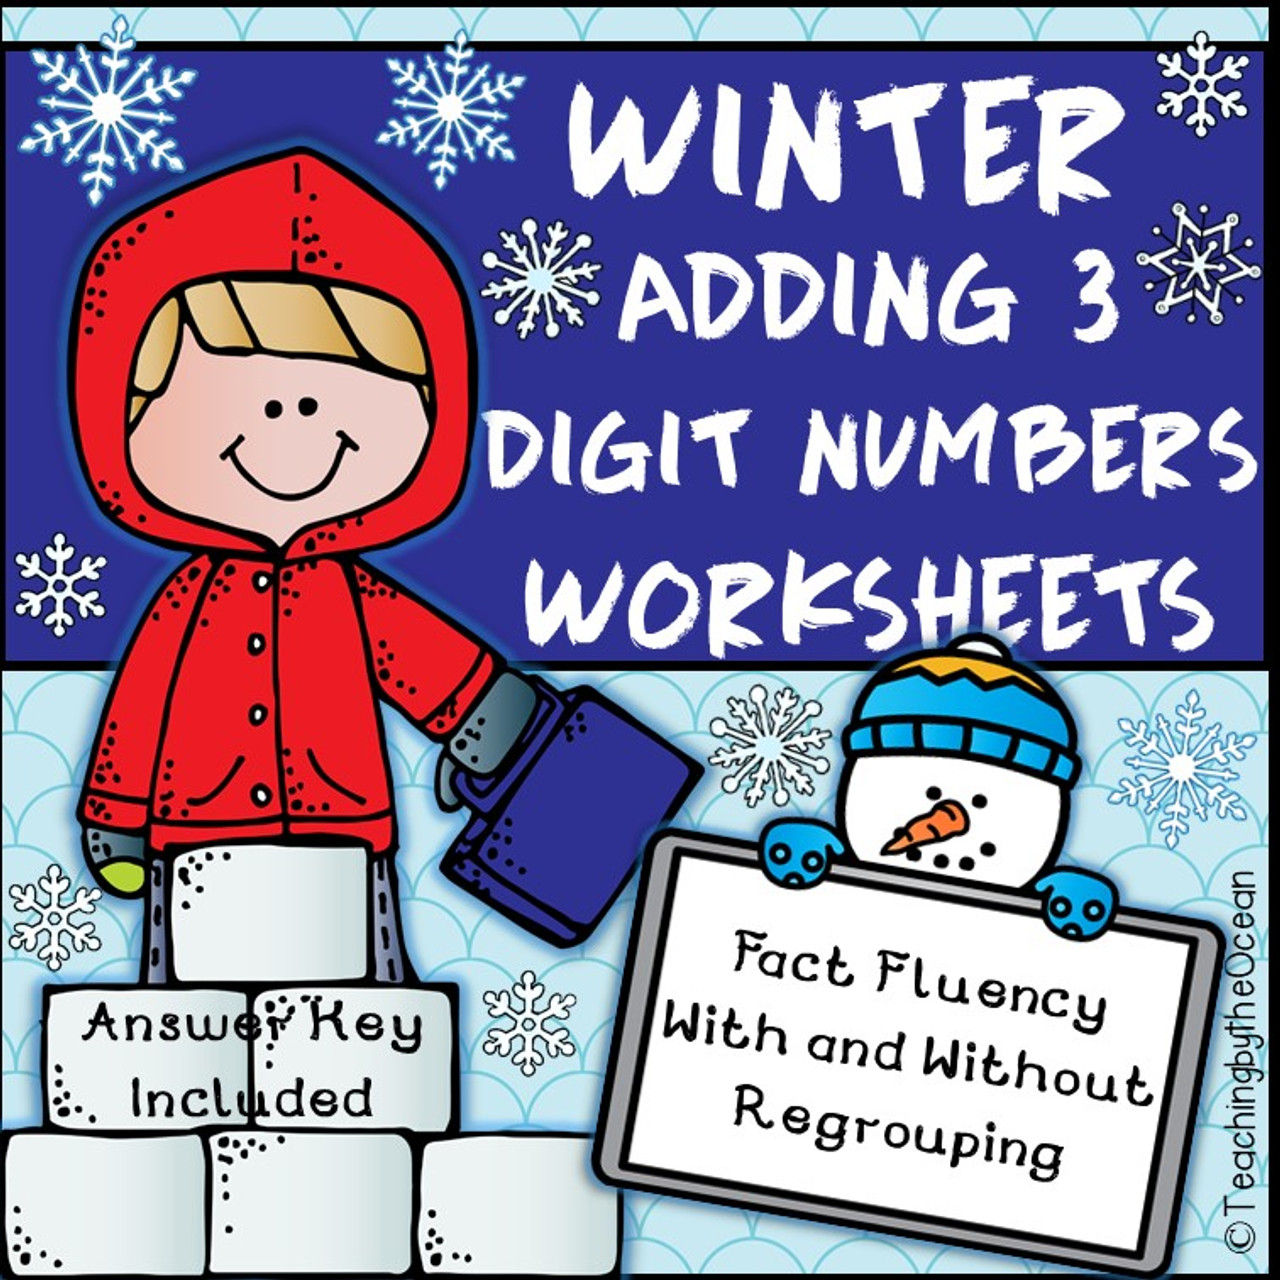 Adding 3 Digit Numbers Worksheets - Winter / Christmas Themed - Amped Up  Learning [ 1280 x 1280 Pixel ]